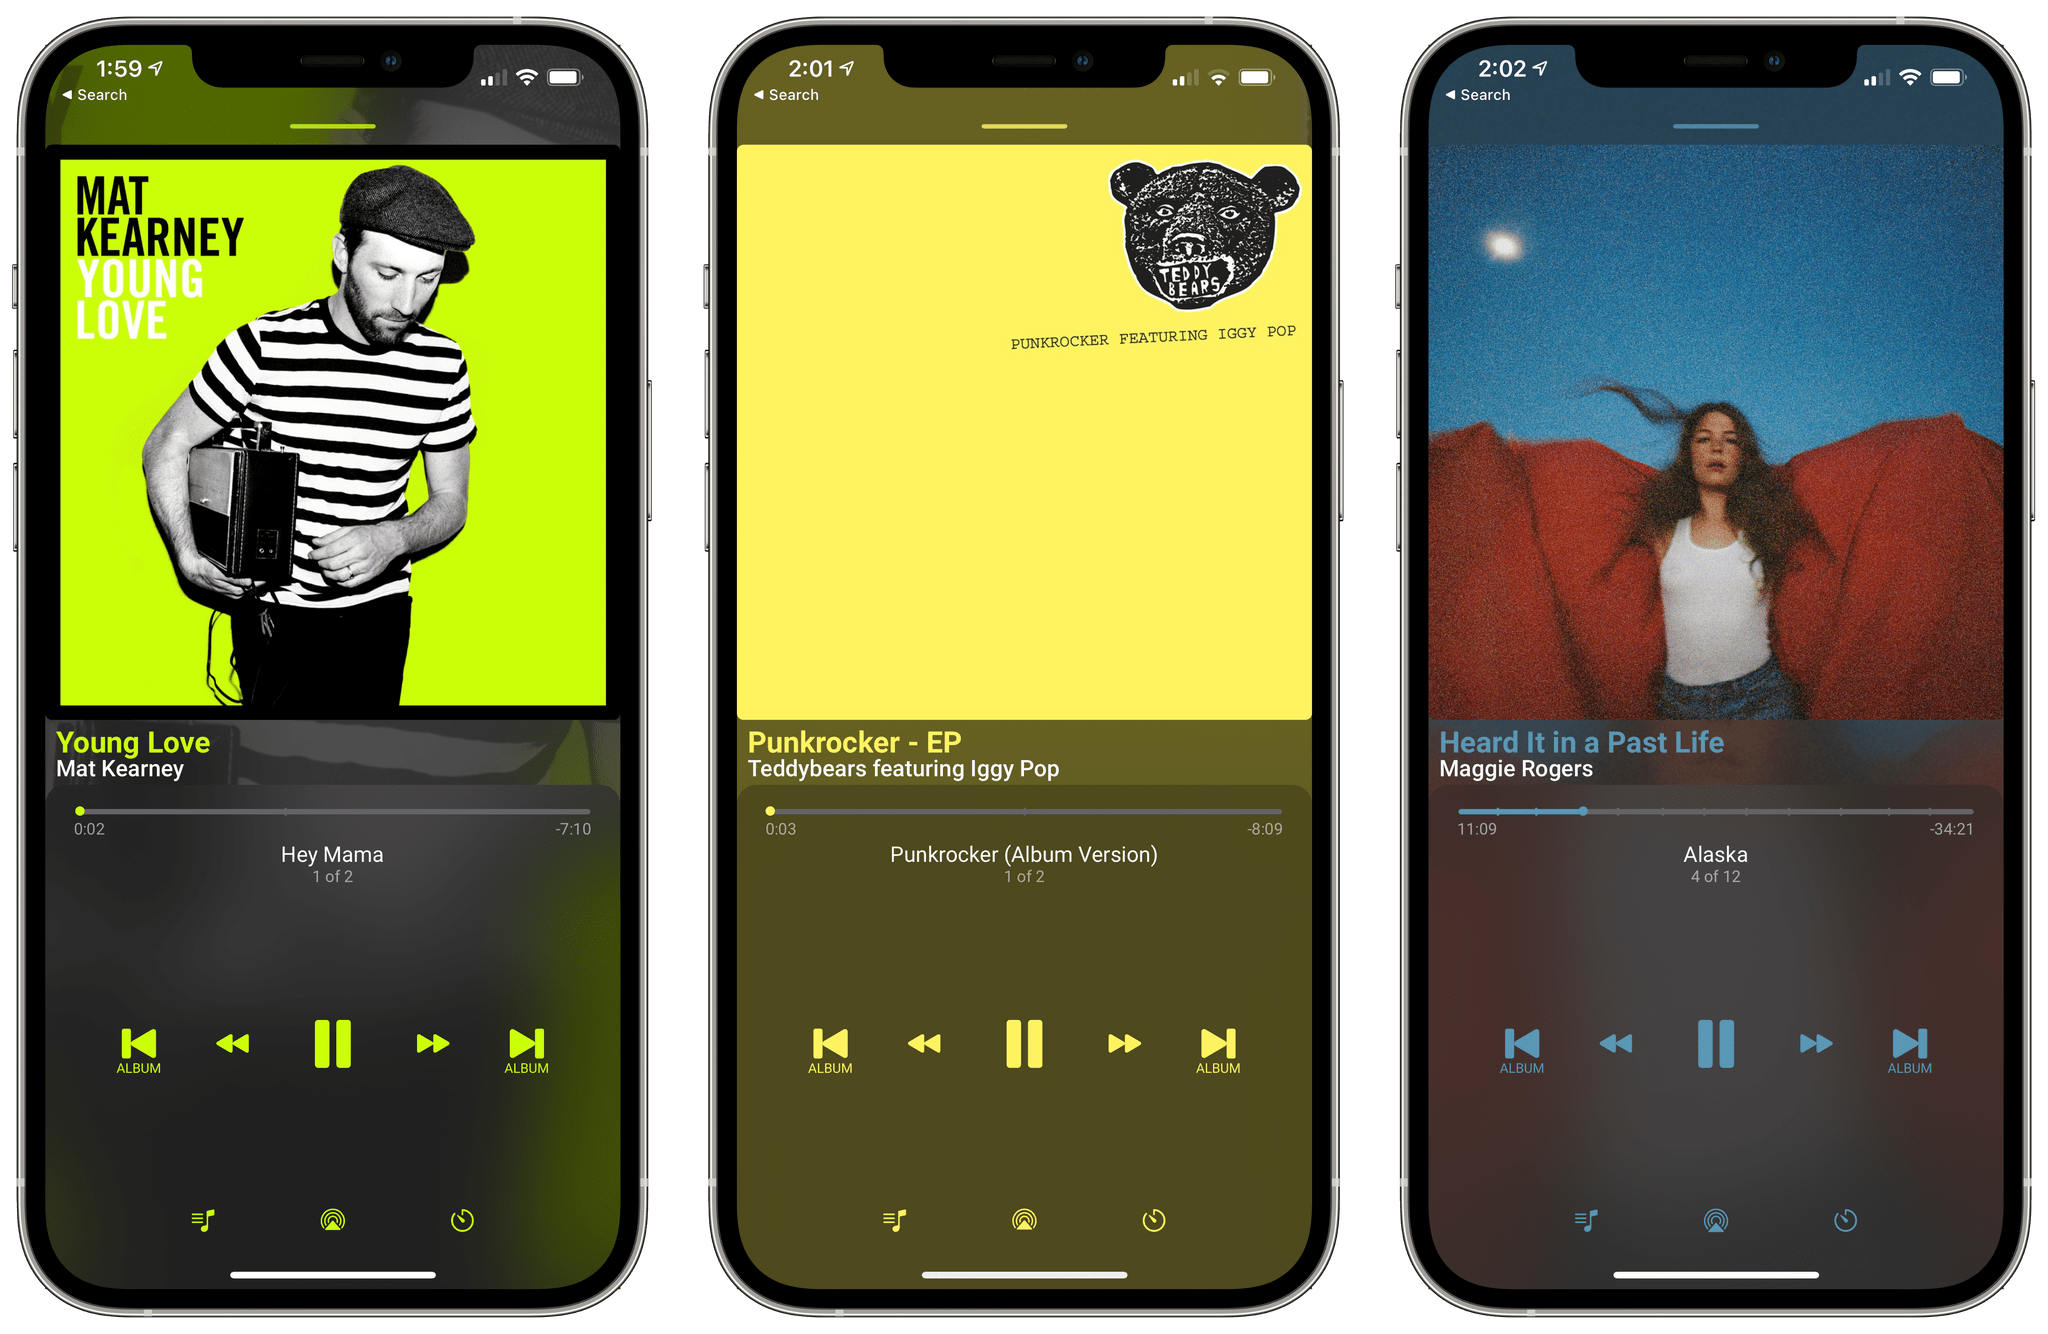 You can optionally tint the app's UI elements to complement the artwork of the currently playing album.